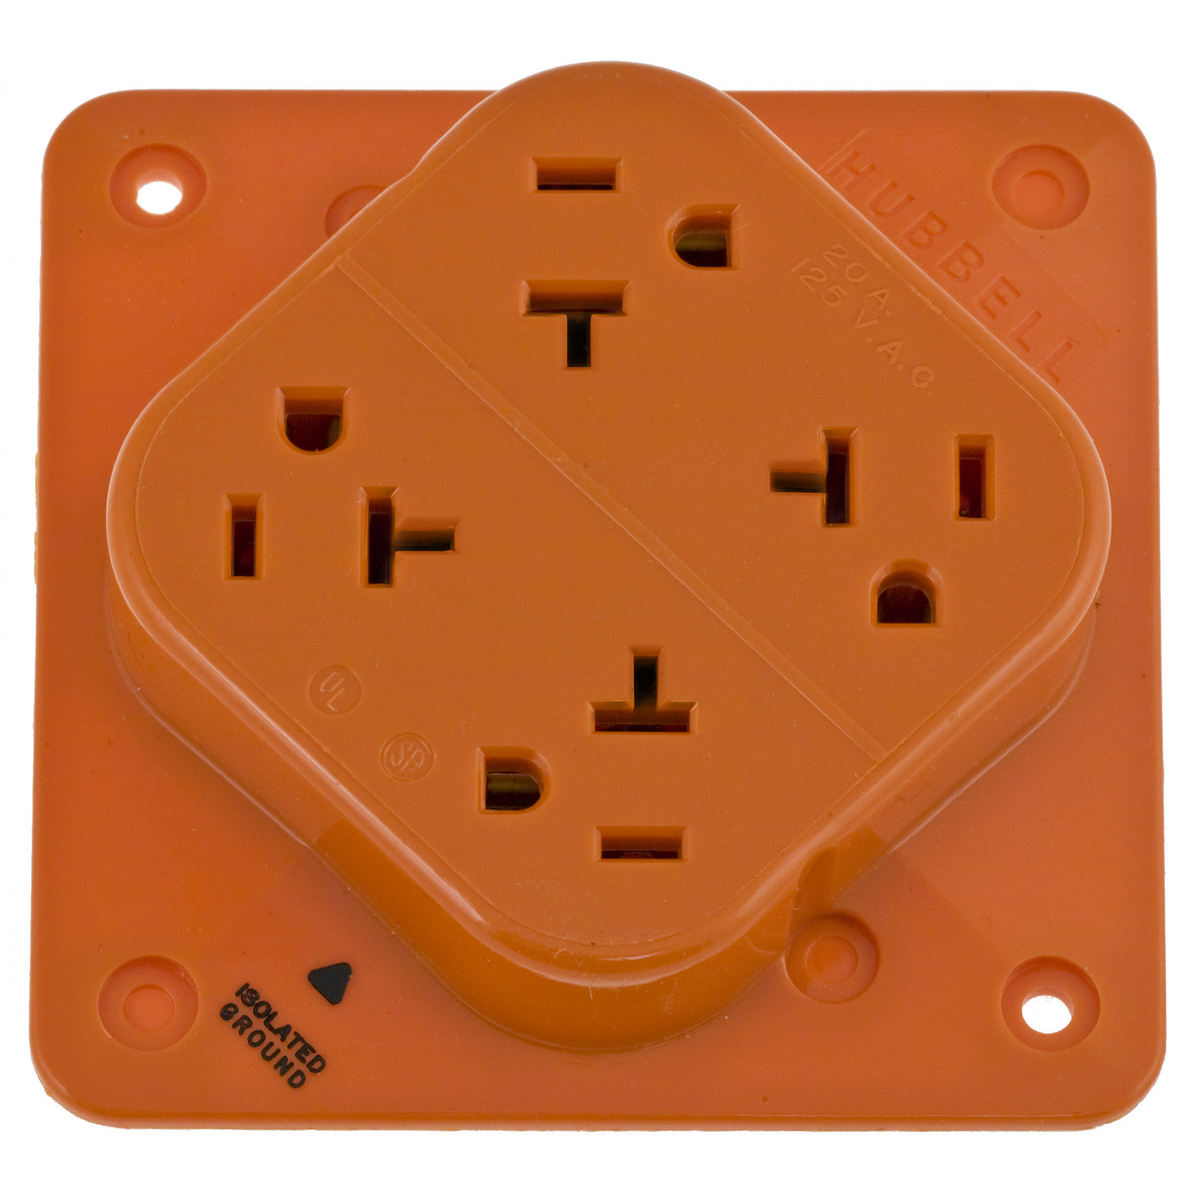 Hubbell IG420 20 Amp 125 VAC 2-Pole 3-Wire NEMA 5-20R Orange Isolated Ground Straight Blade Receptacle